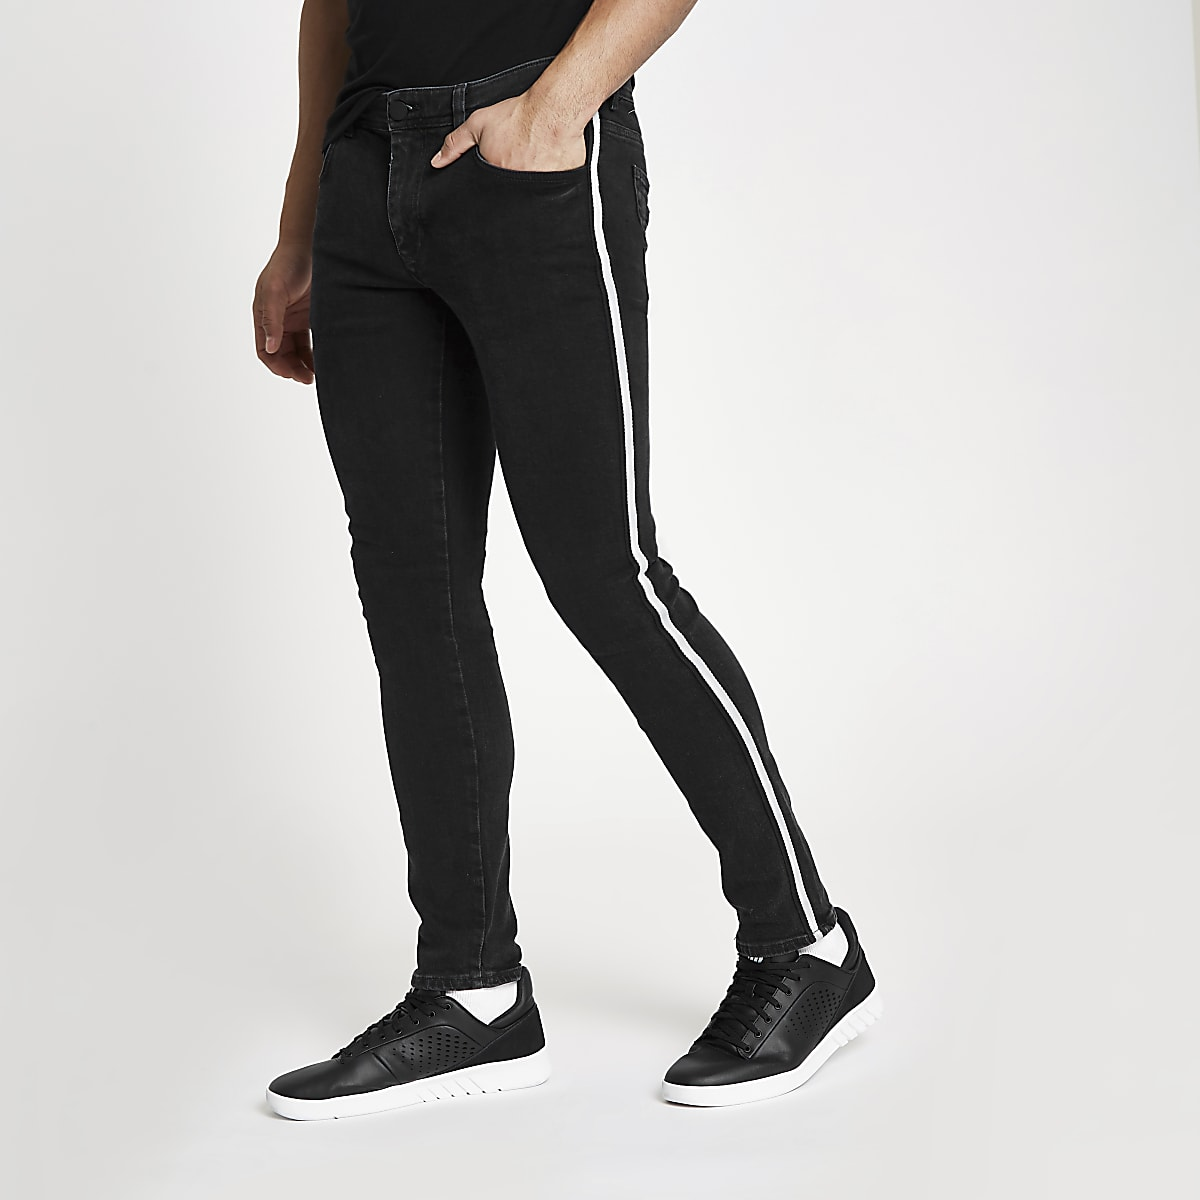 Black wash skinny fit tape side jeans